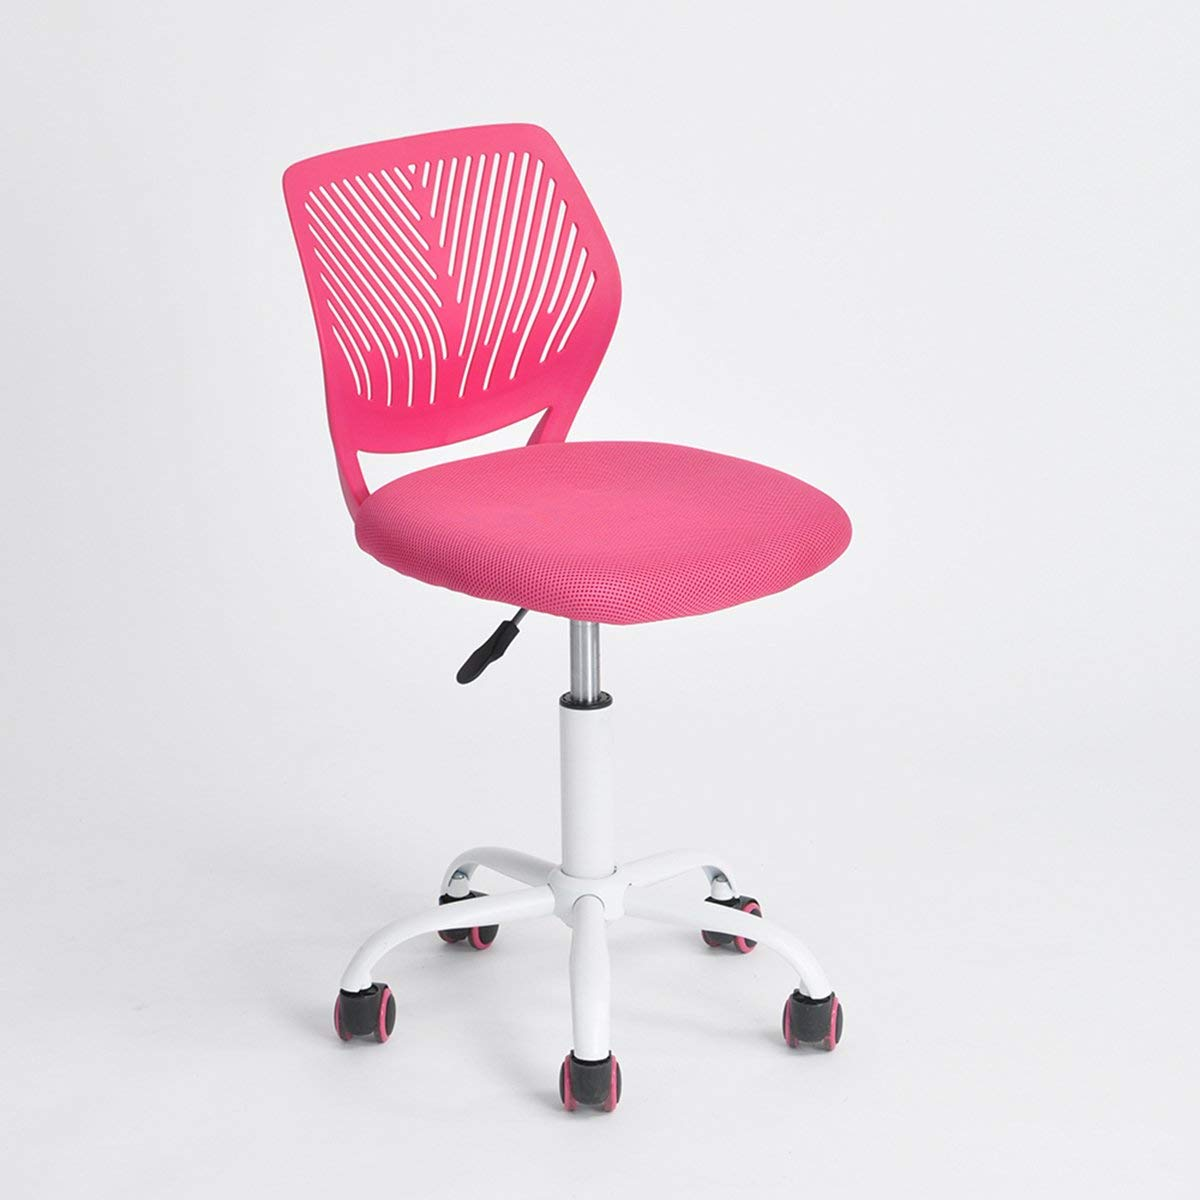 kids desk chairs amazon.com: pink office task adjustable desk chair mid back home children VZFBJFN